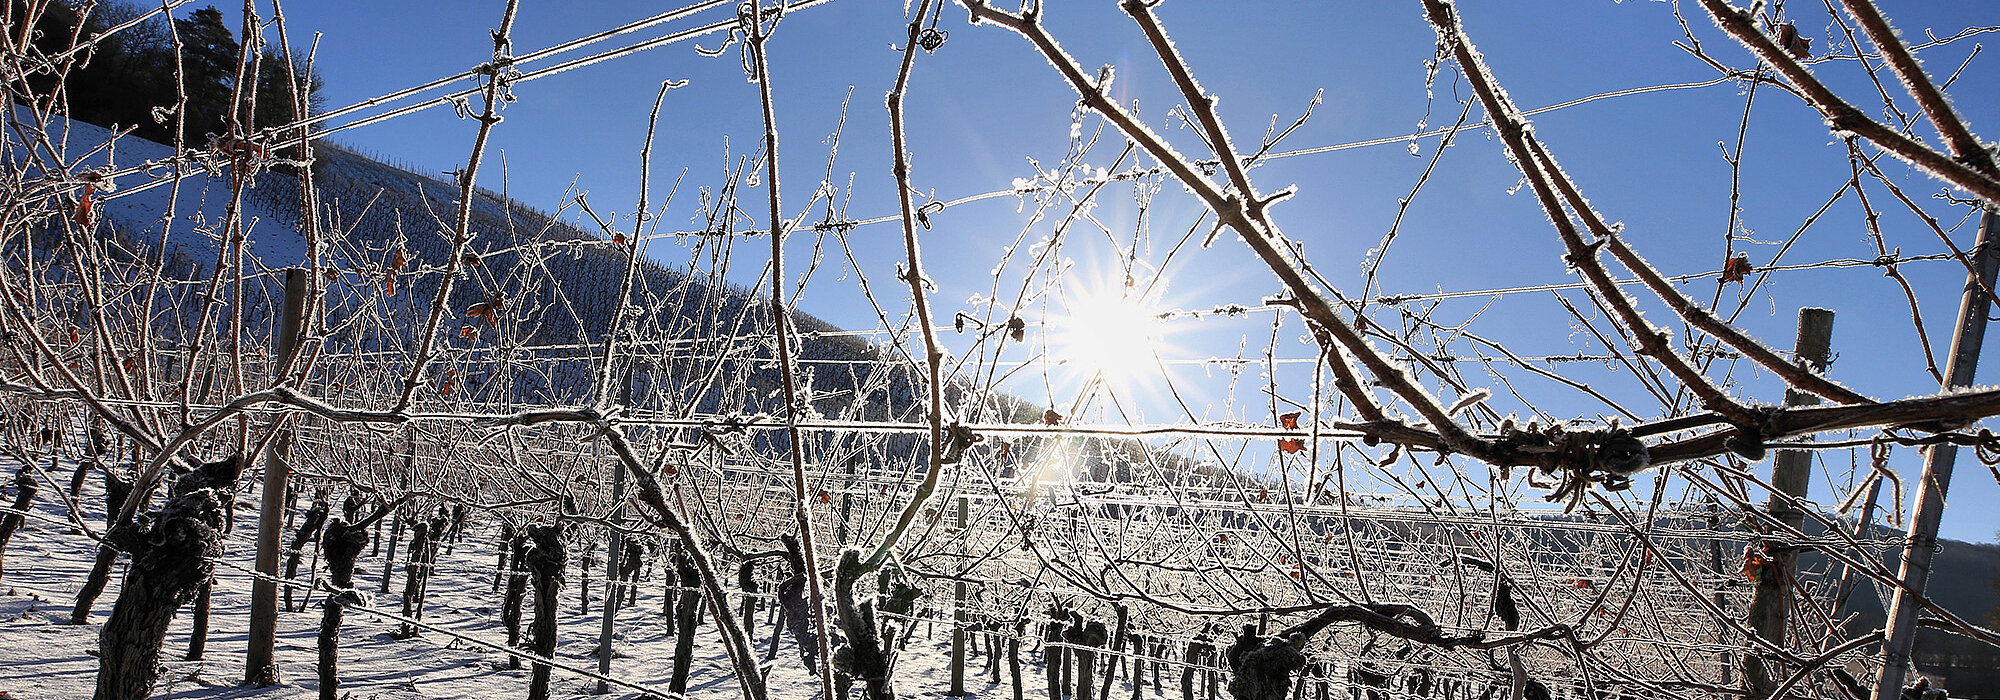 Winterliches Weinparadies Franken